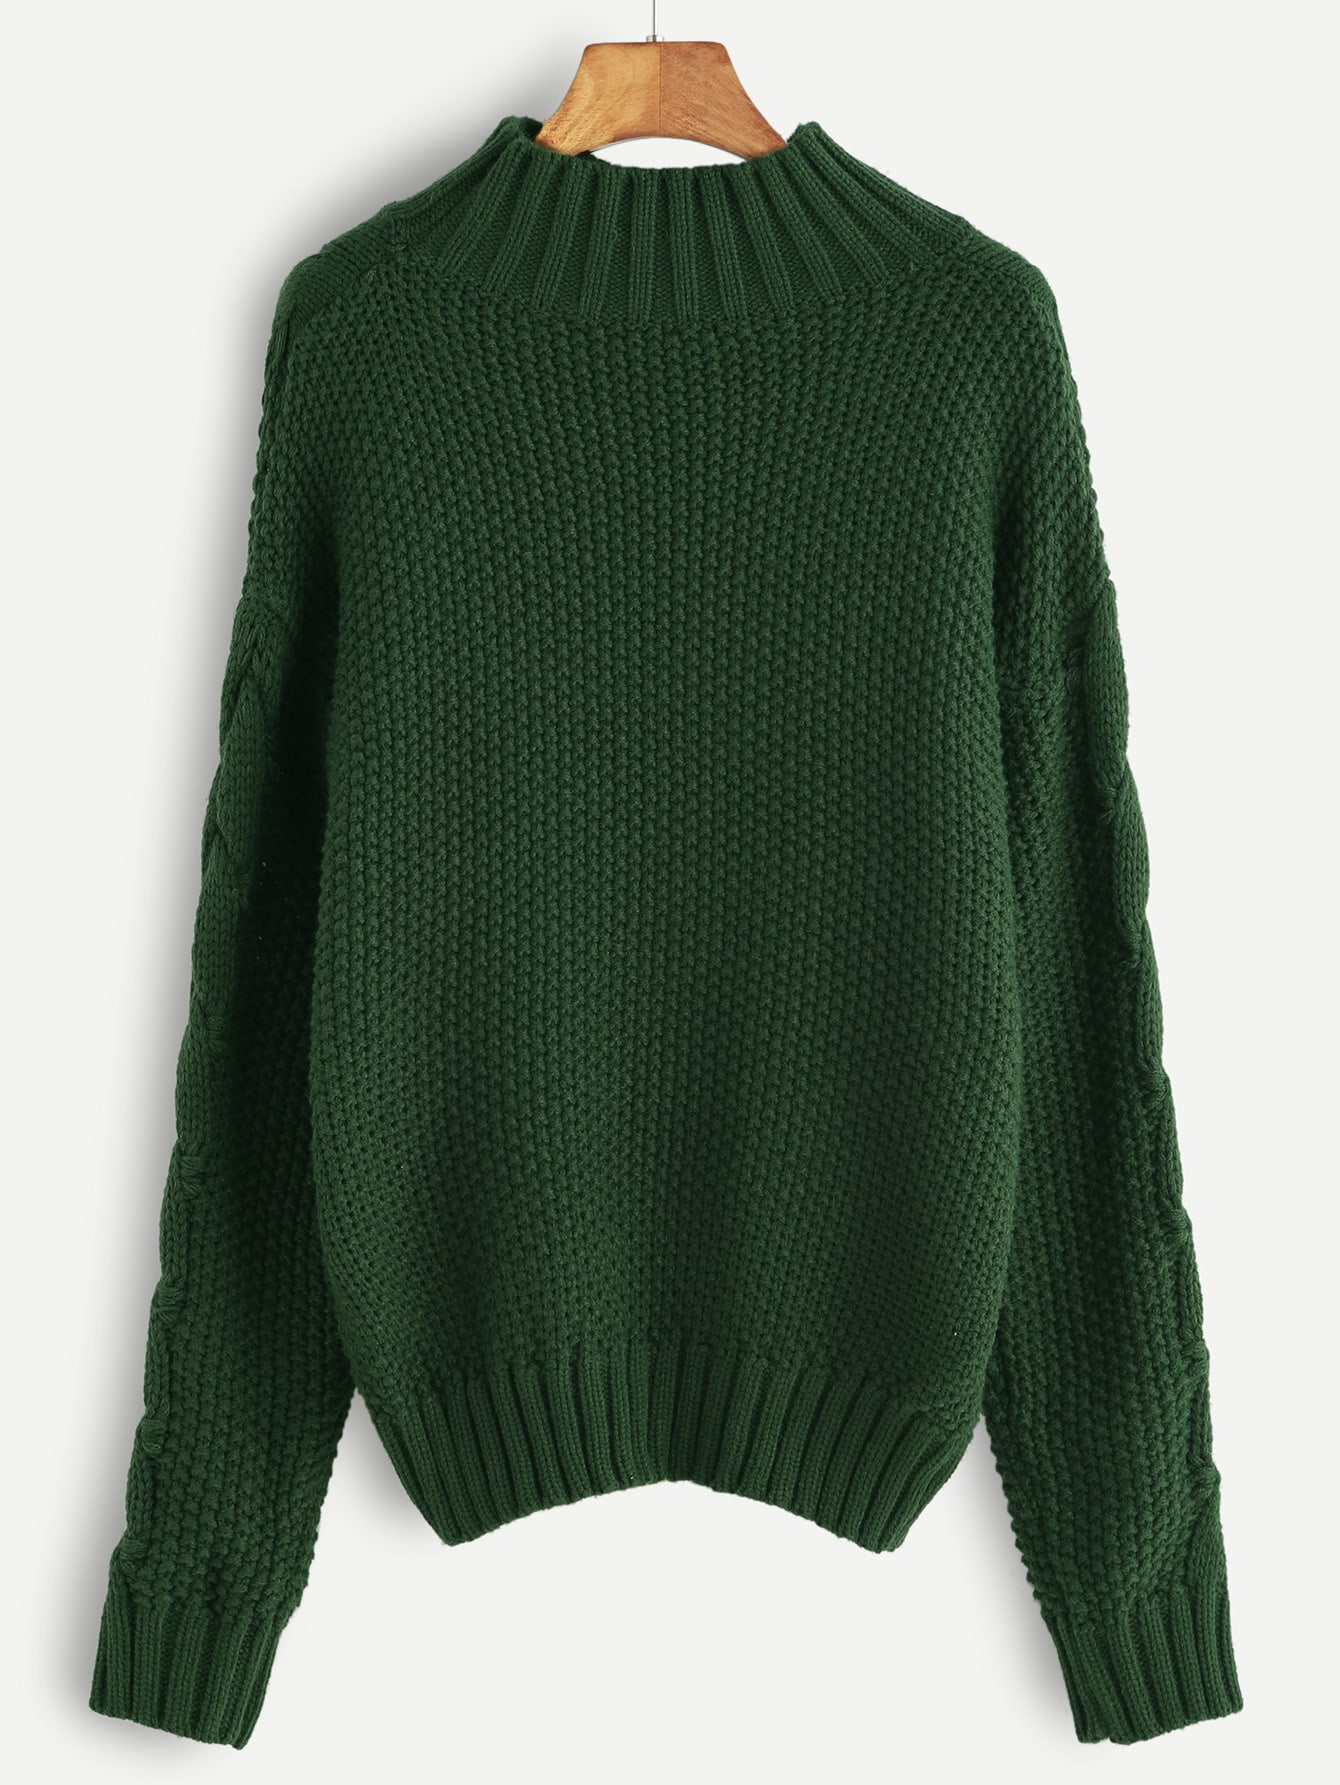 Green Cable Knit Turtleneck Sweater -SheIn(Sheinside)